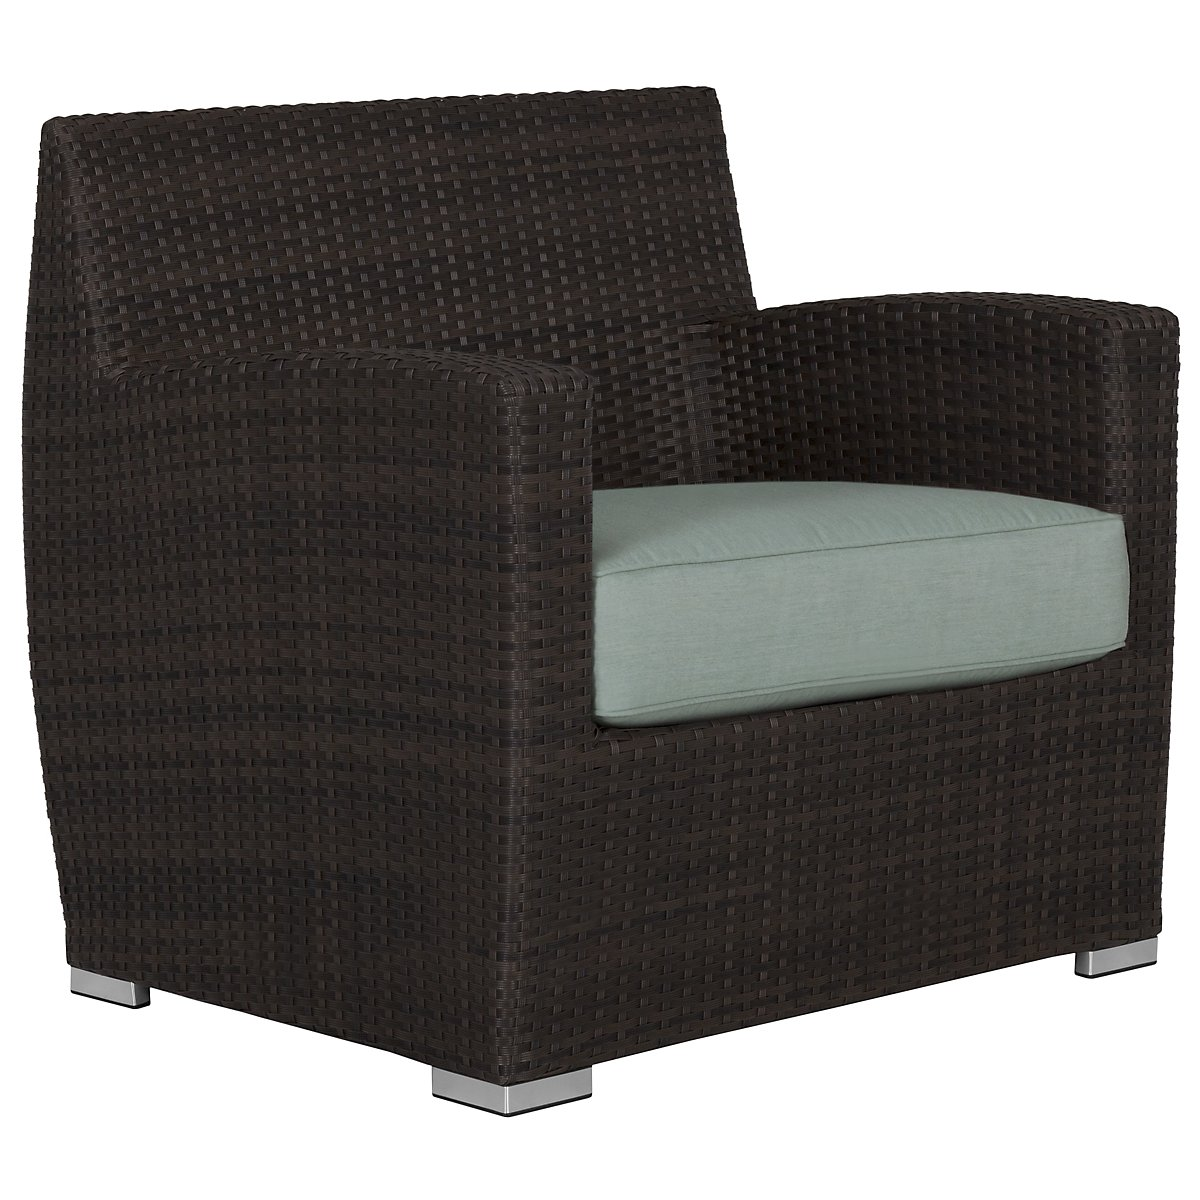 Grate Teal Chair